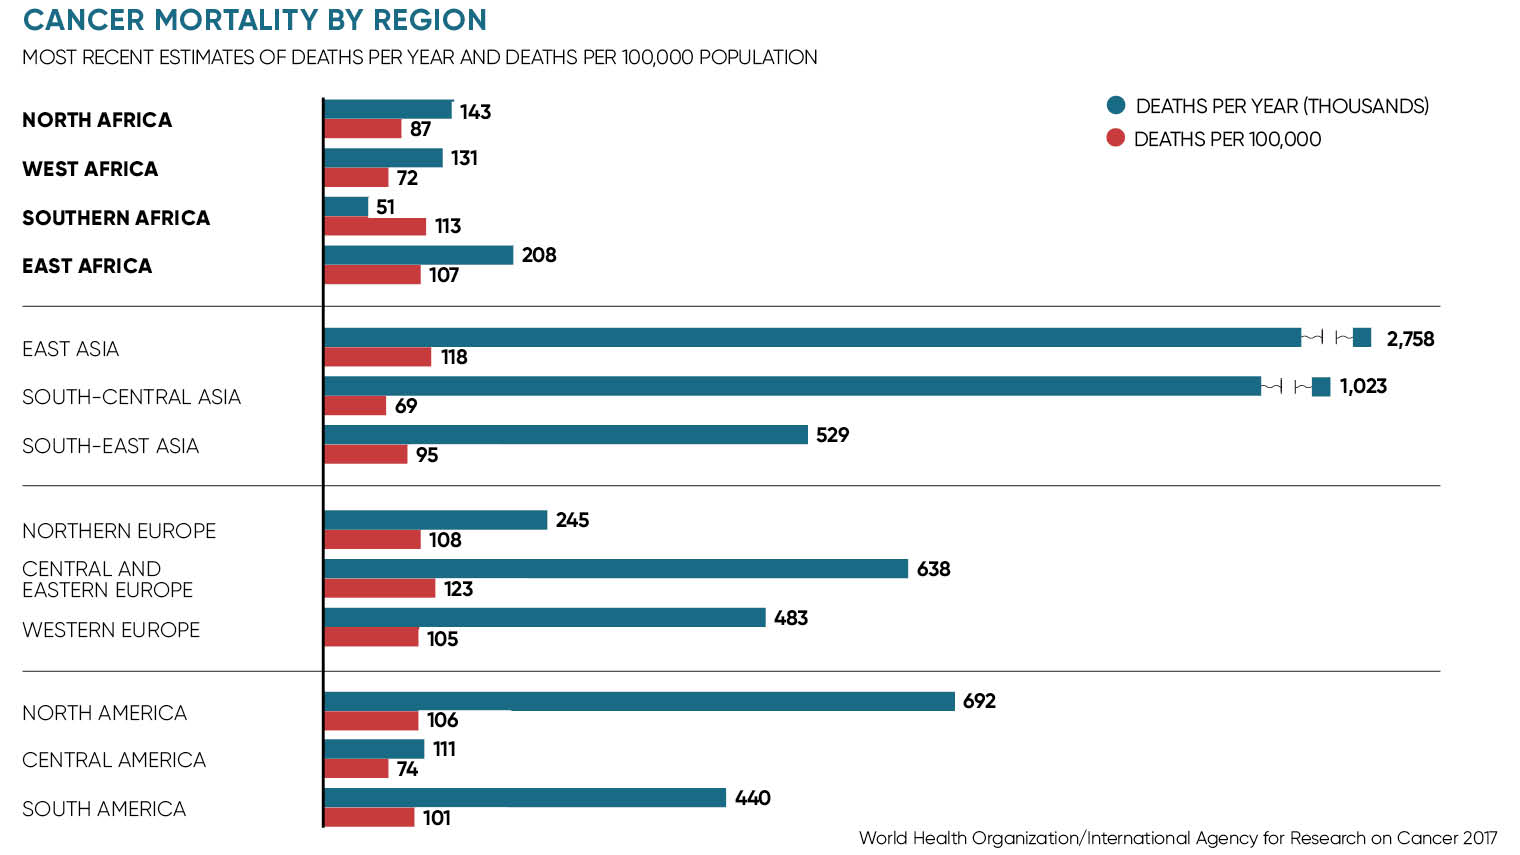 Cancer mortality by region graph